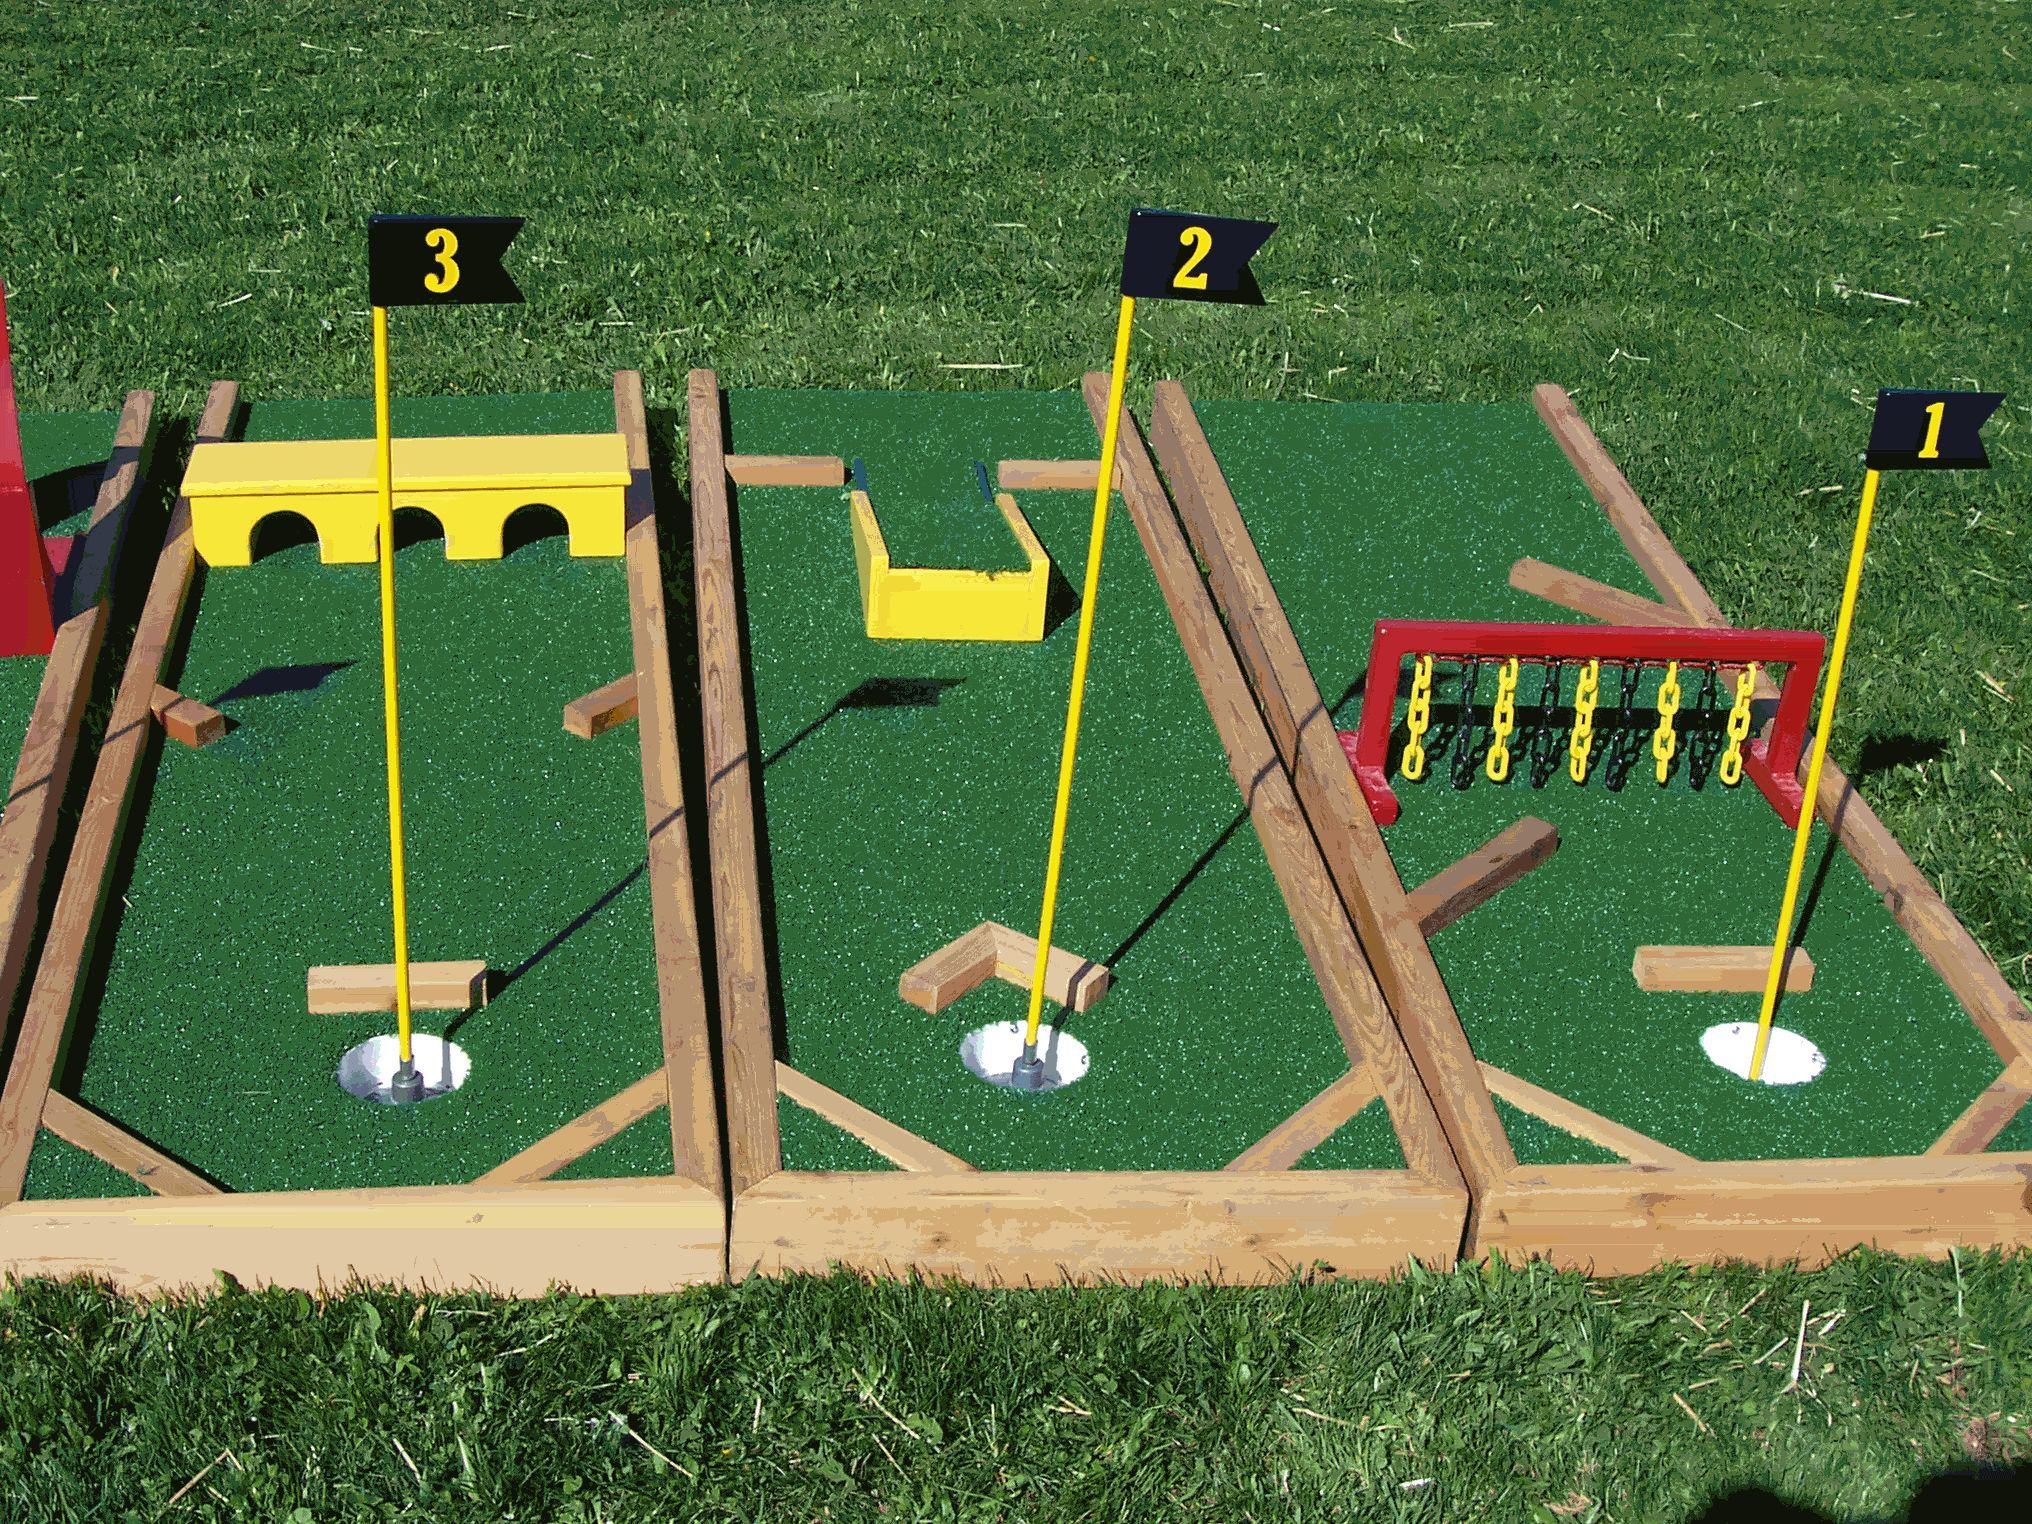 diy mini golf obstacles crafts diy pinterest spiel. Black Bedroom Furniture Sets. Home Design Ideas